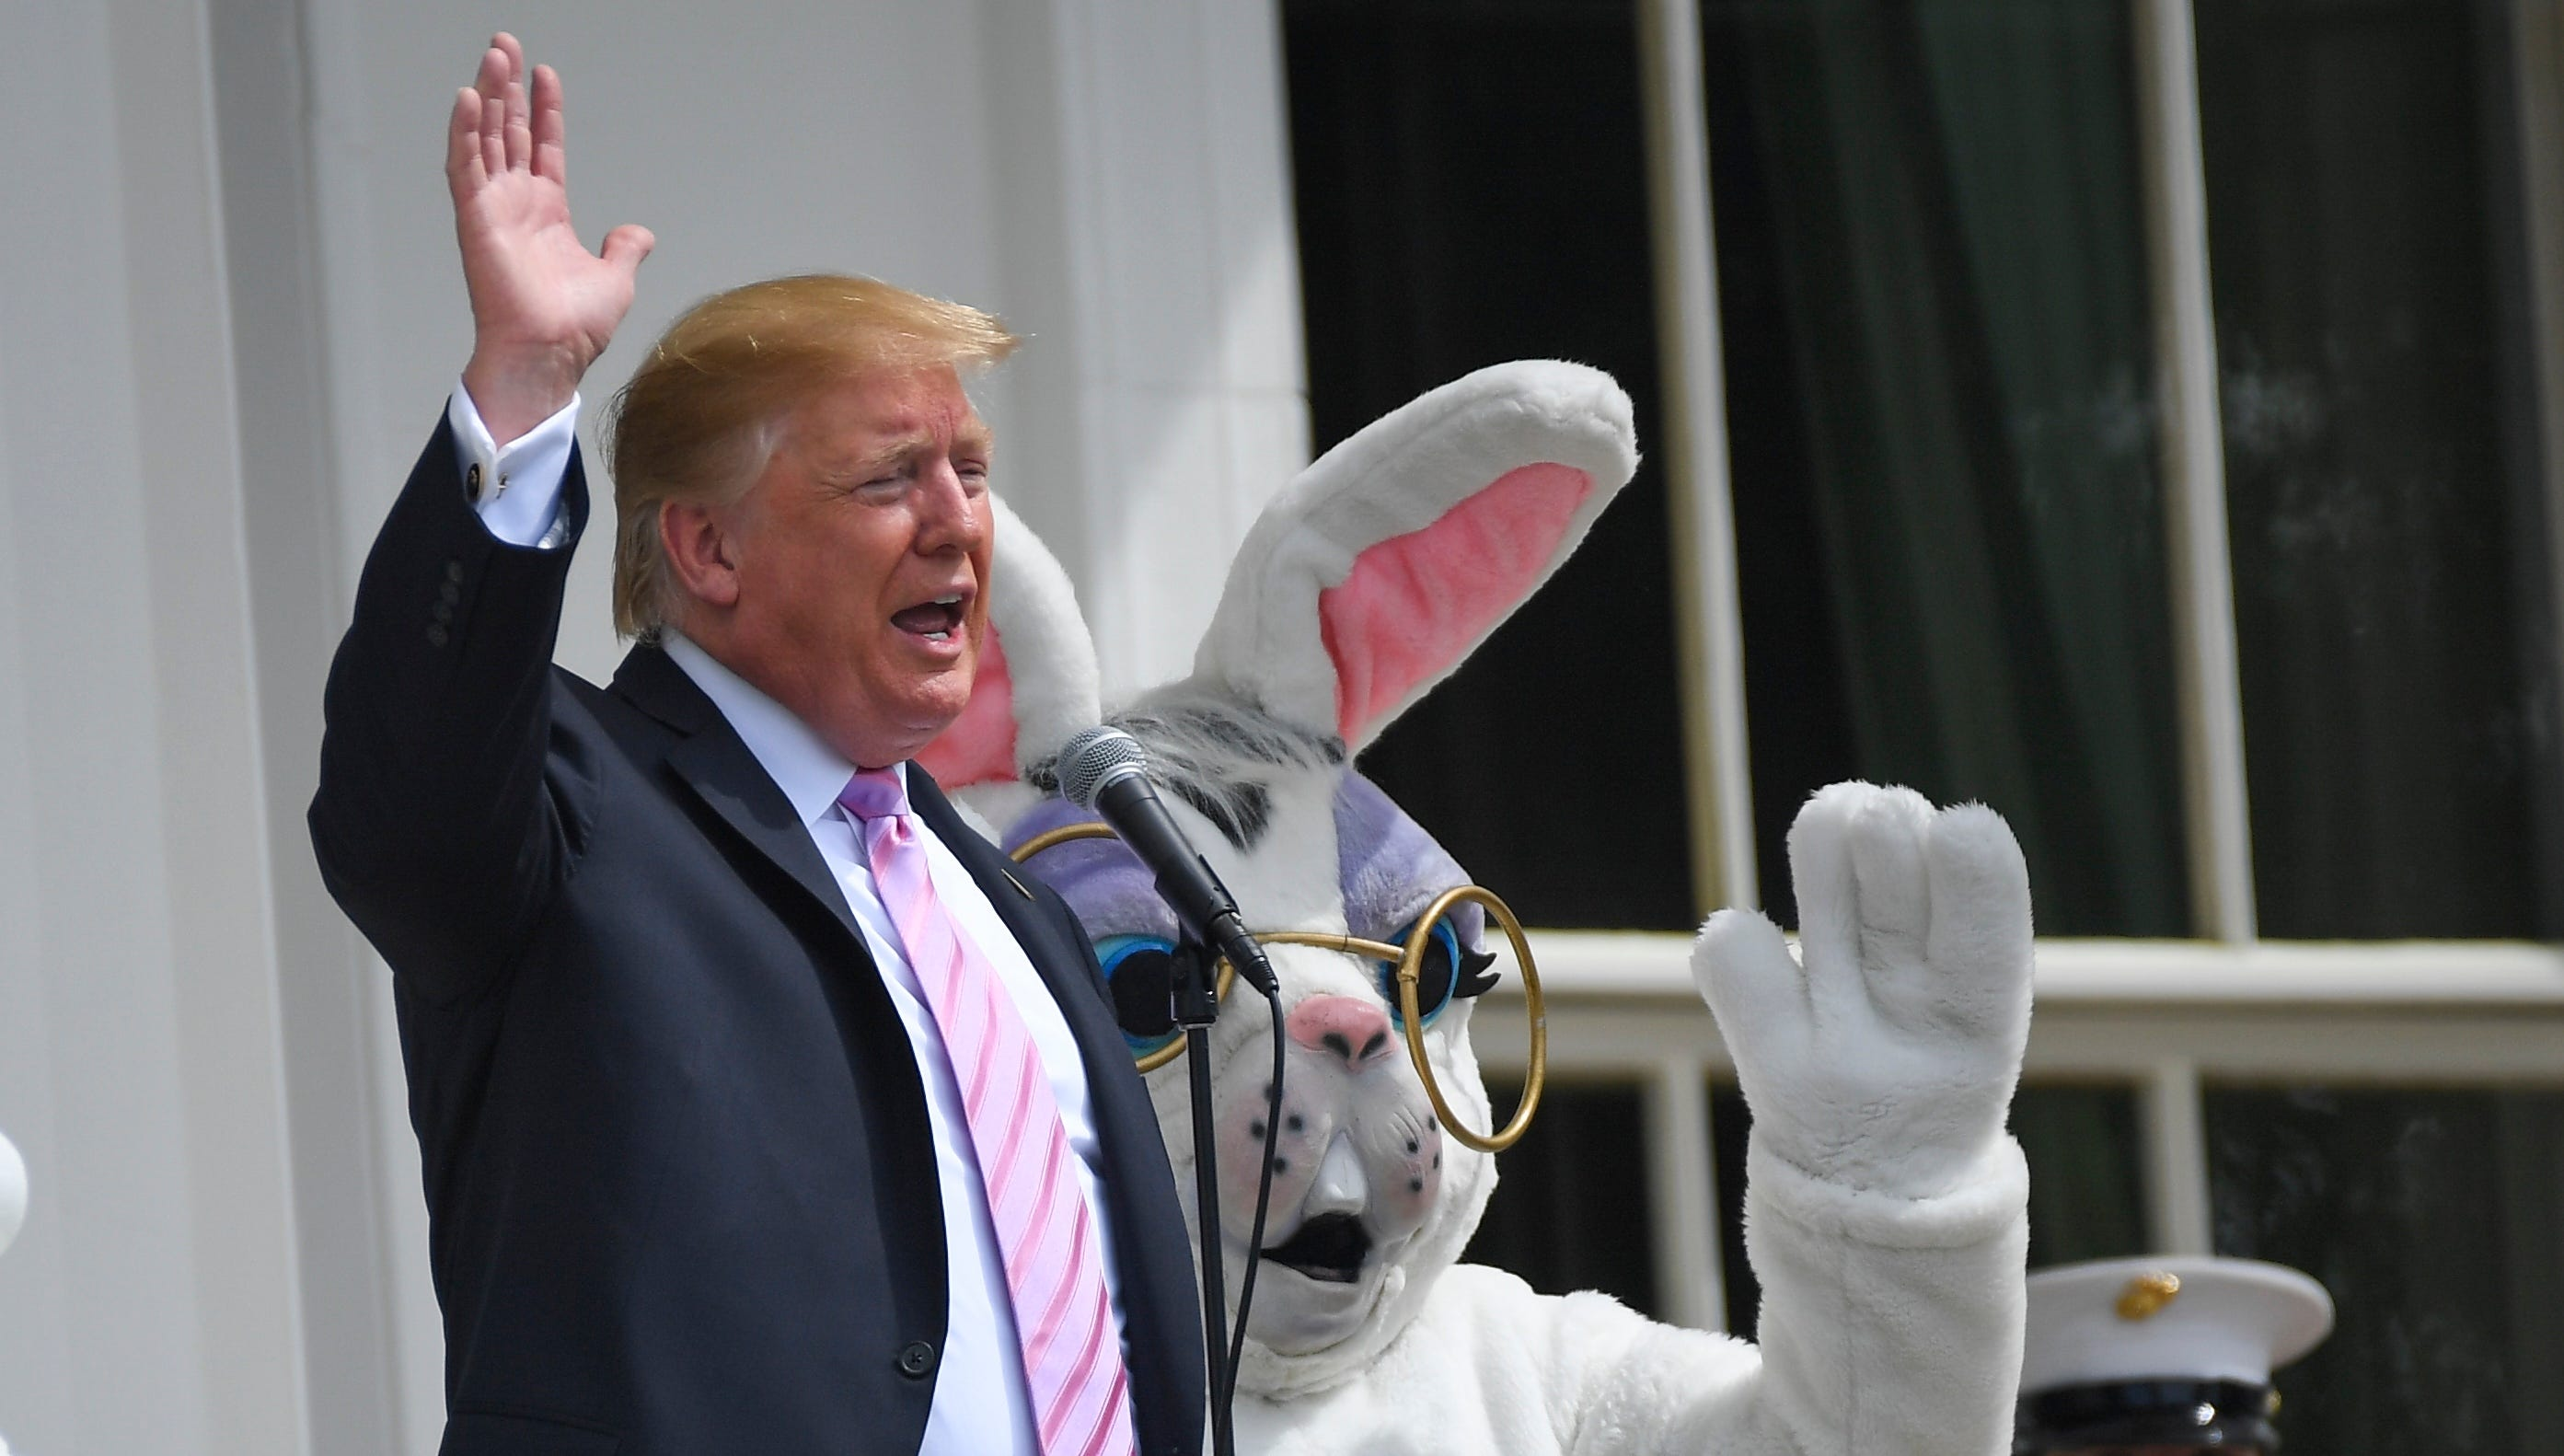 President Donald J. Trump waves following his remarks at the 2019 White House Easter Egg Roll on April 22, 2019.